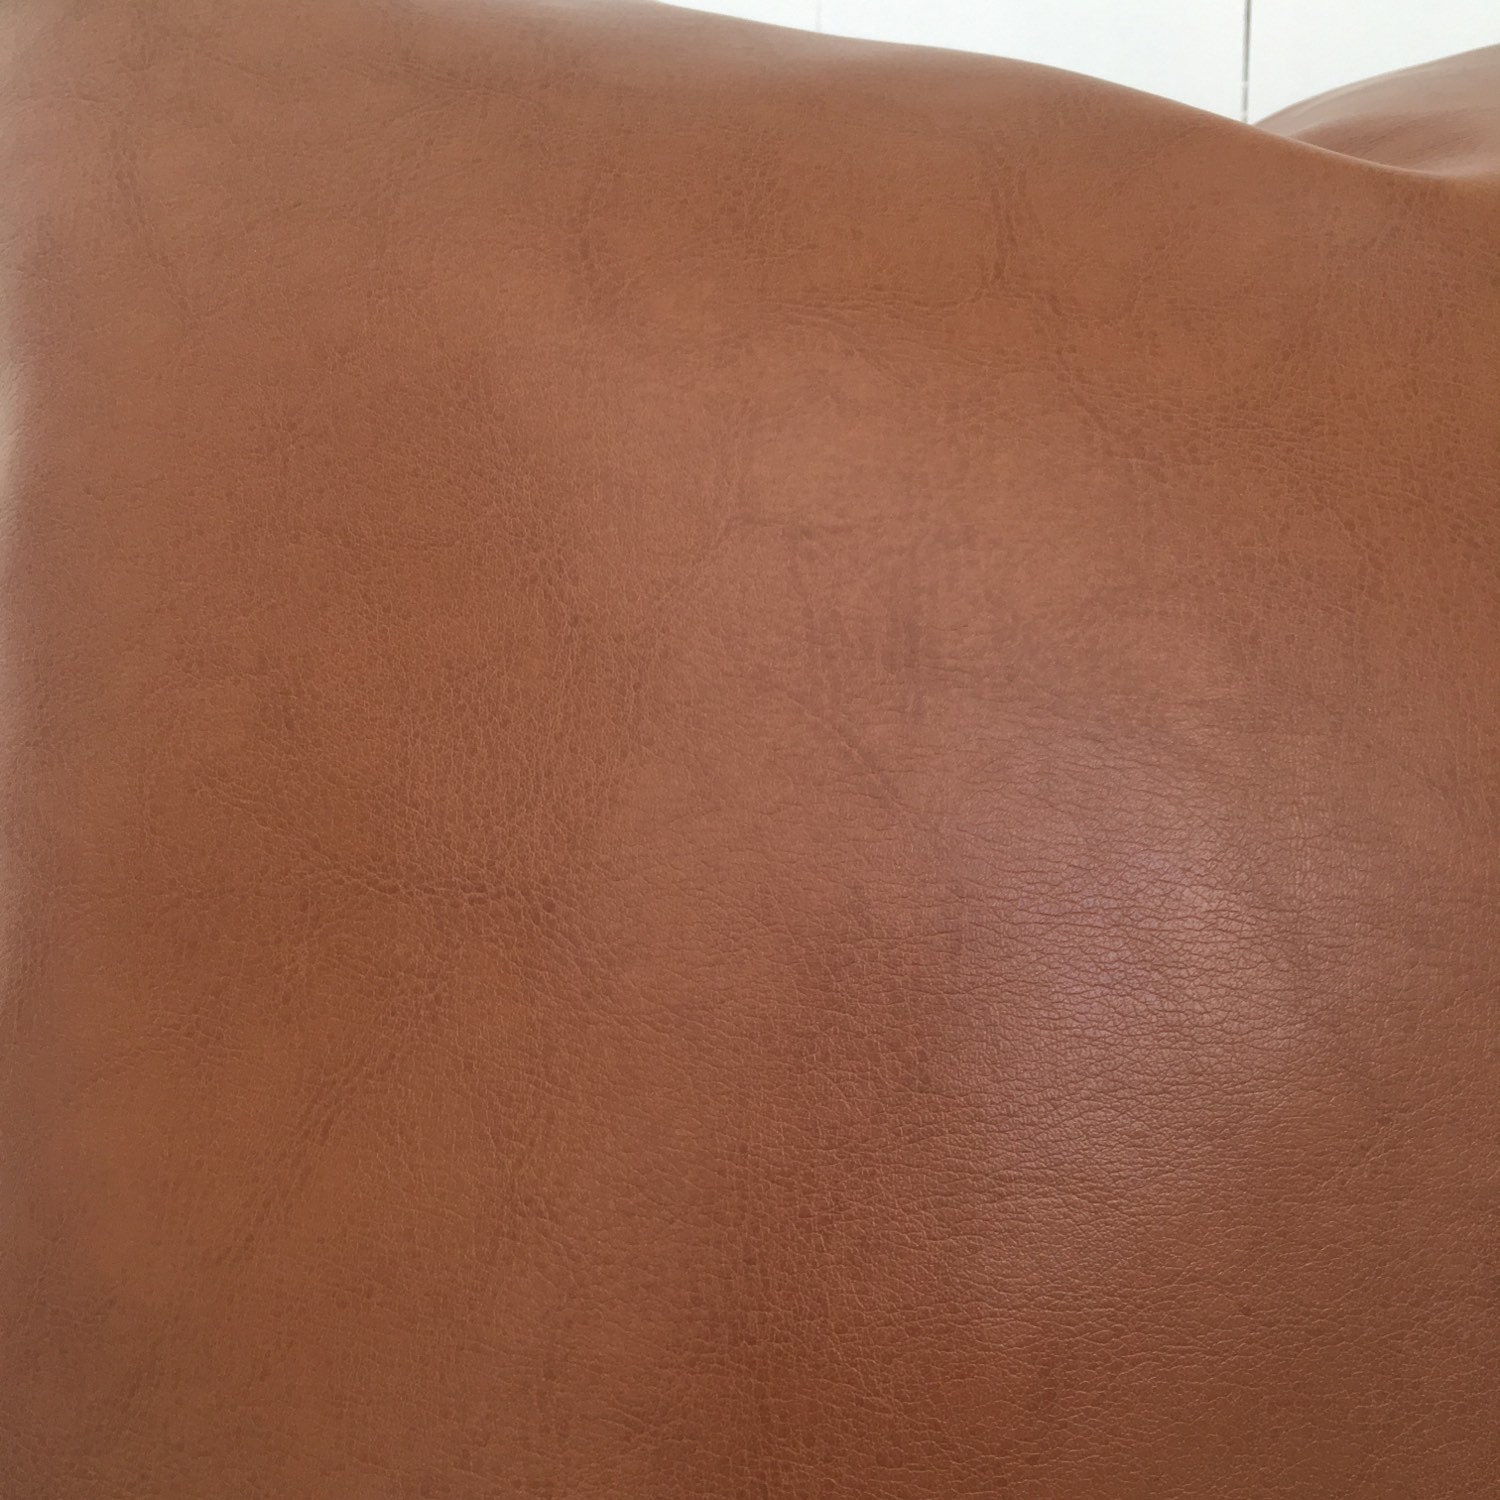 Leather cushion texture - Leather Cushion Texture 57